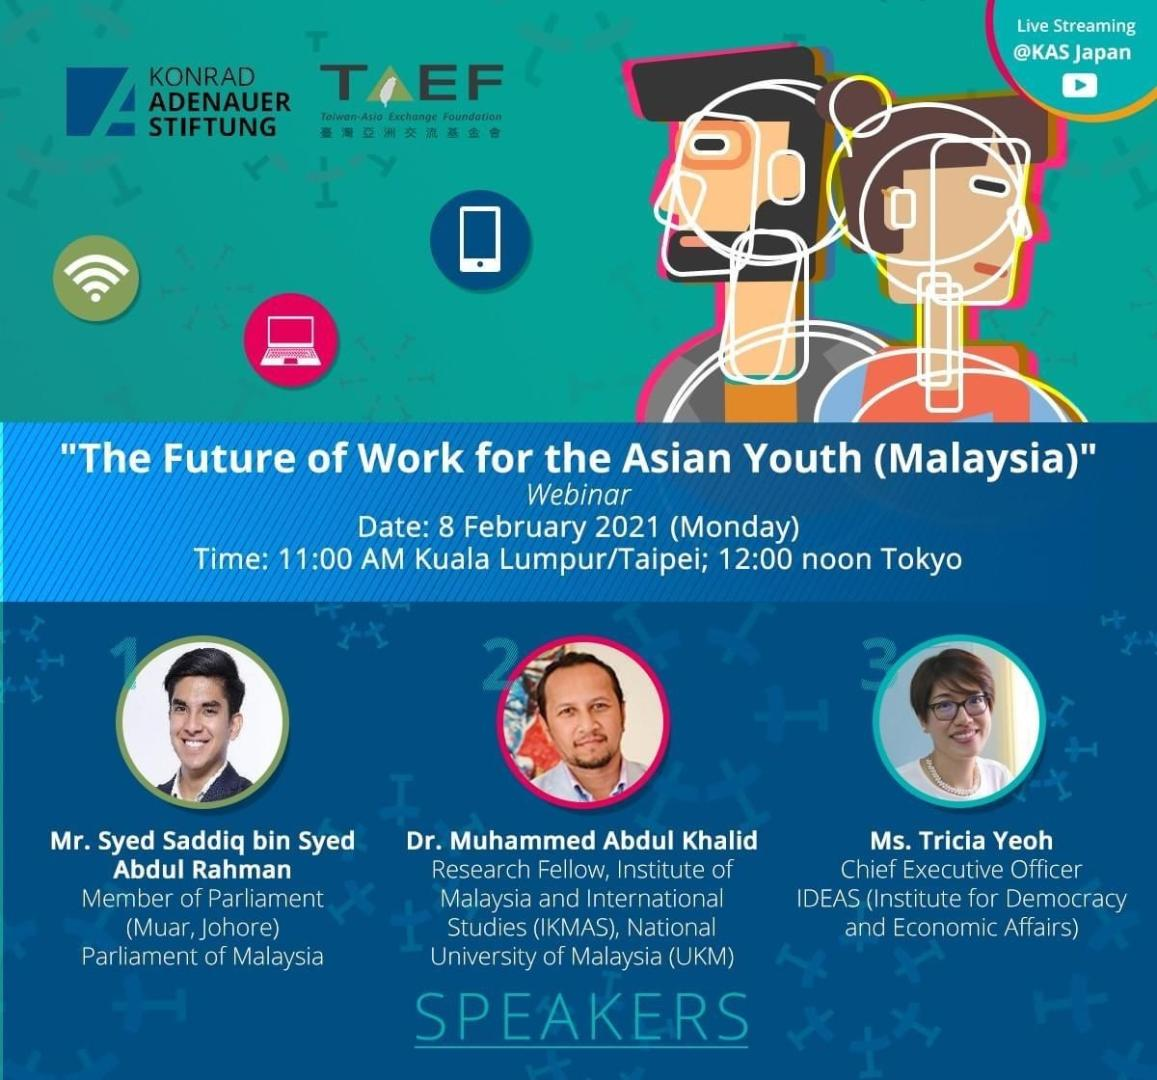 The Future of Work for the Asian Youth (Malaysia)